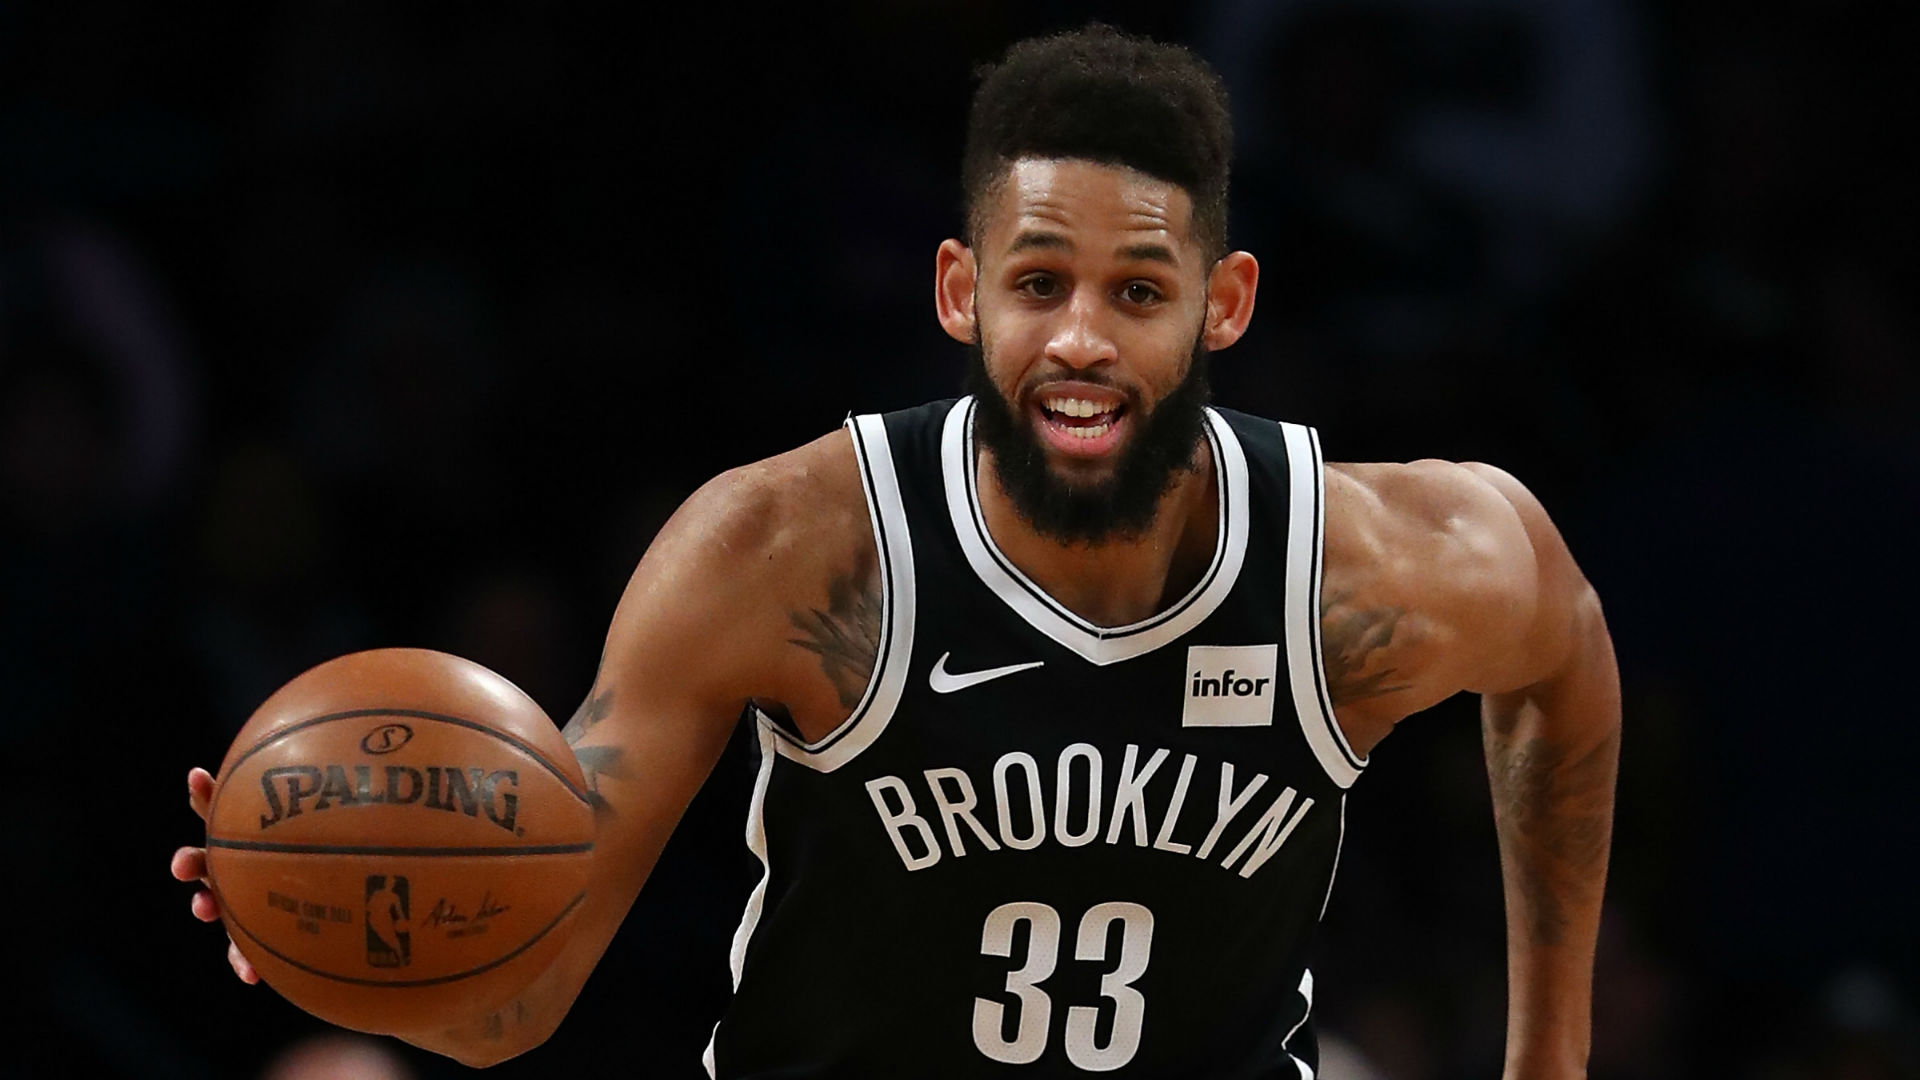 Nets' Allen Crabbe makes big donation to save high school his grandfather founded